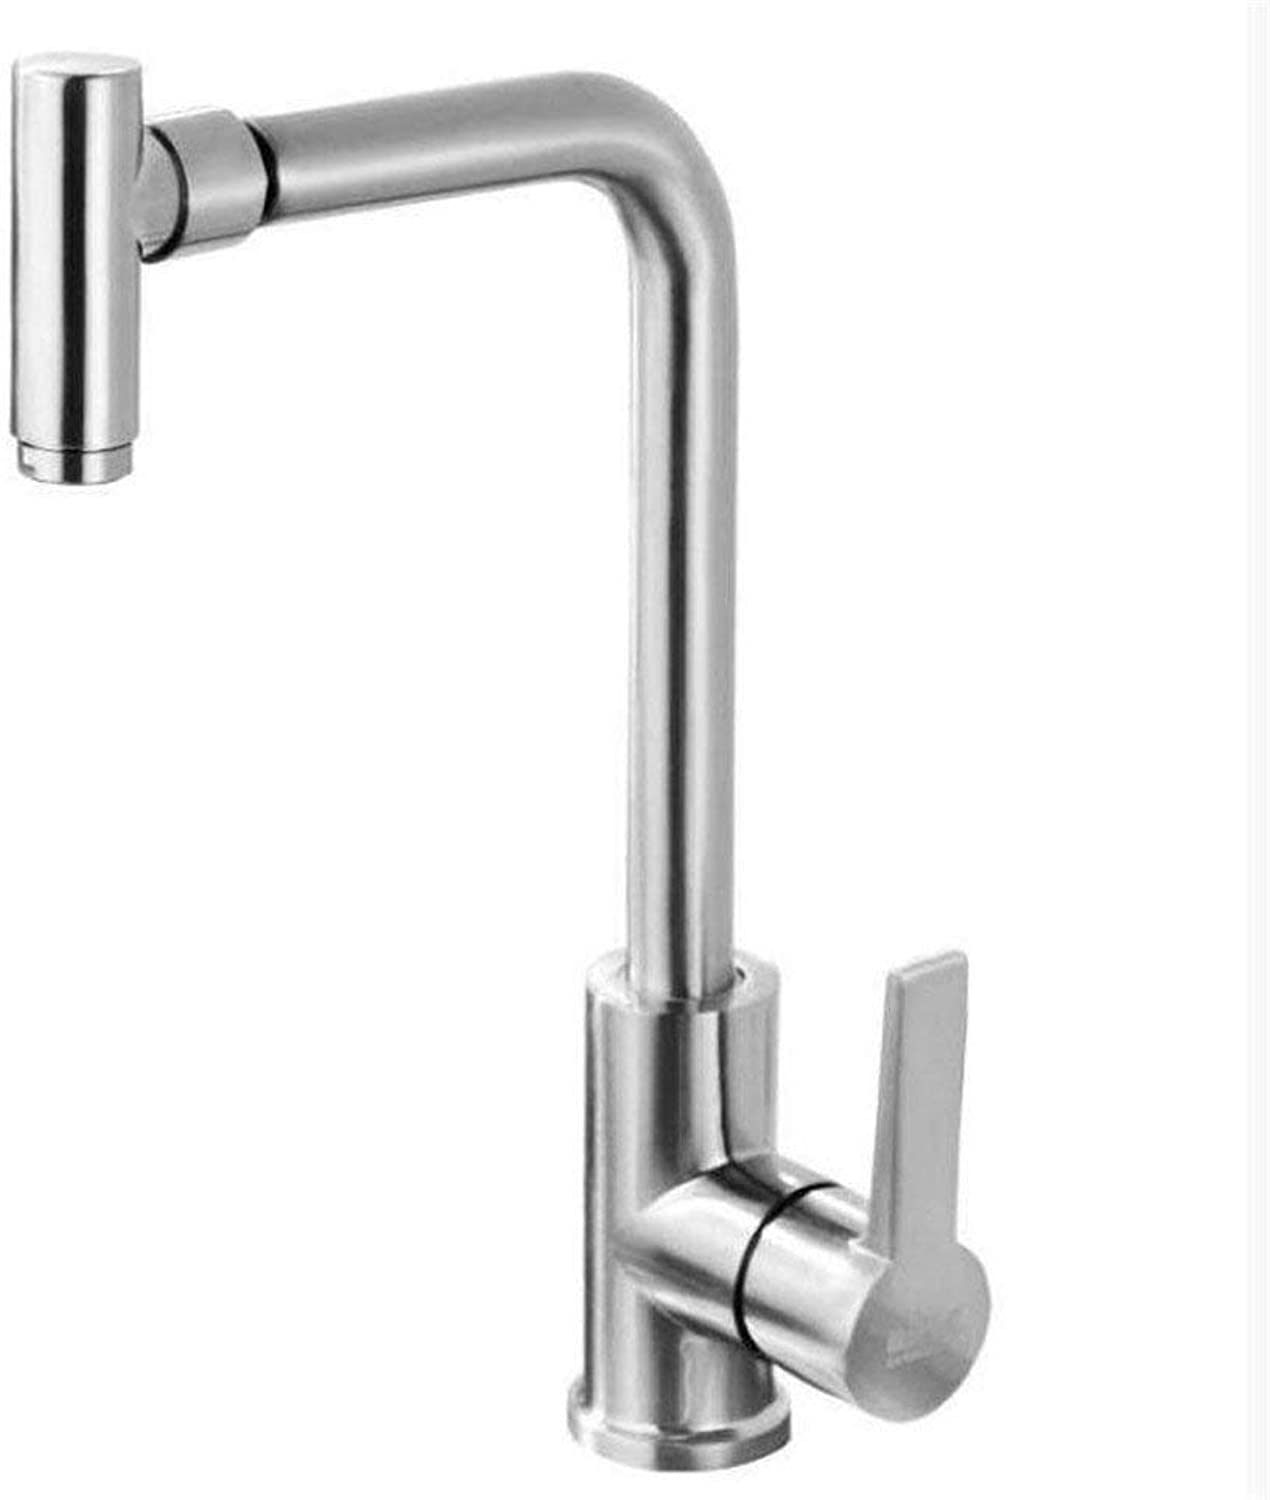 Oudan Vegetables Basin Kitchen Faucet Single Cold Sink Faucet Hot and Cold Copper Body 304 Stainless Steel Wire Drawing Full redation (color   -, Size   -)